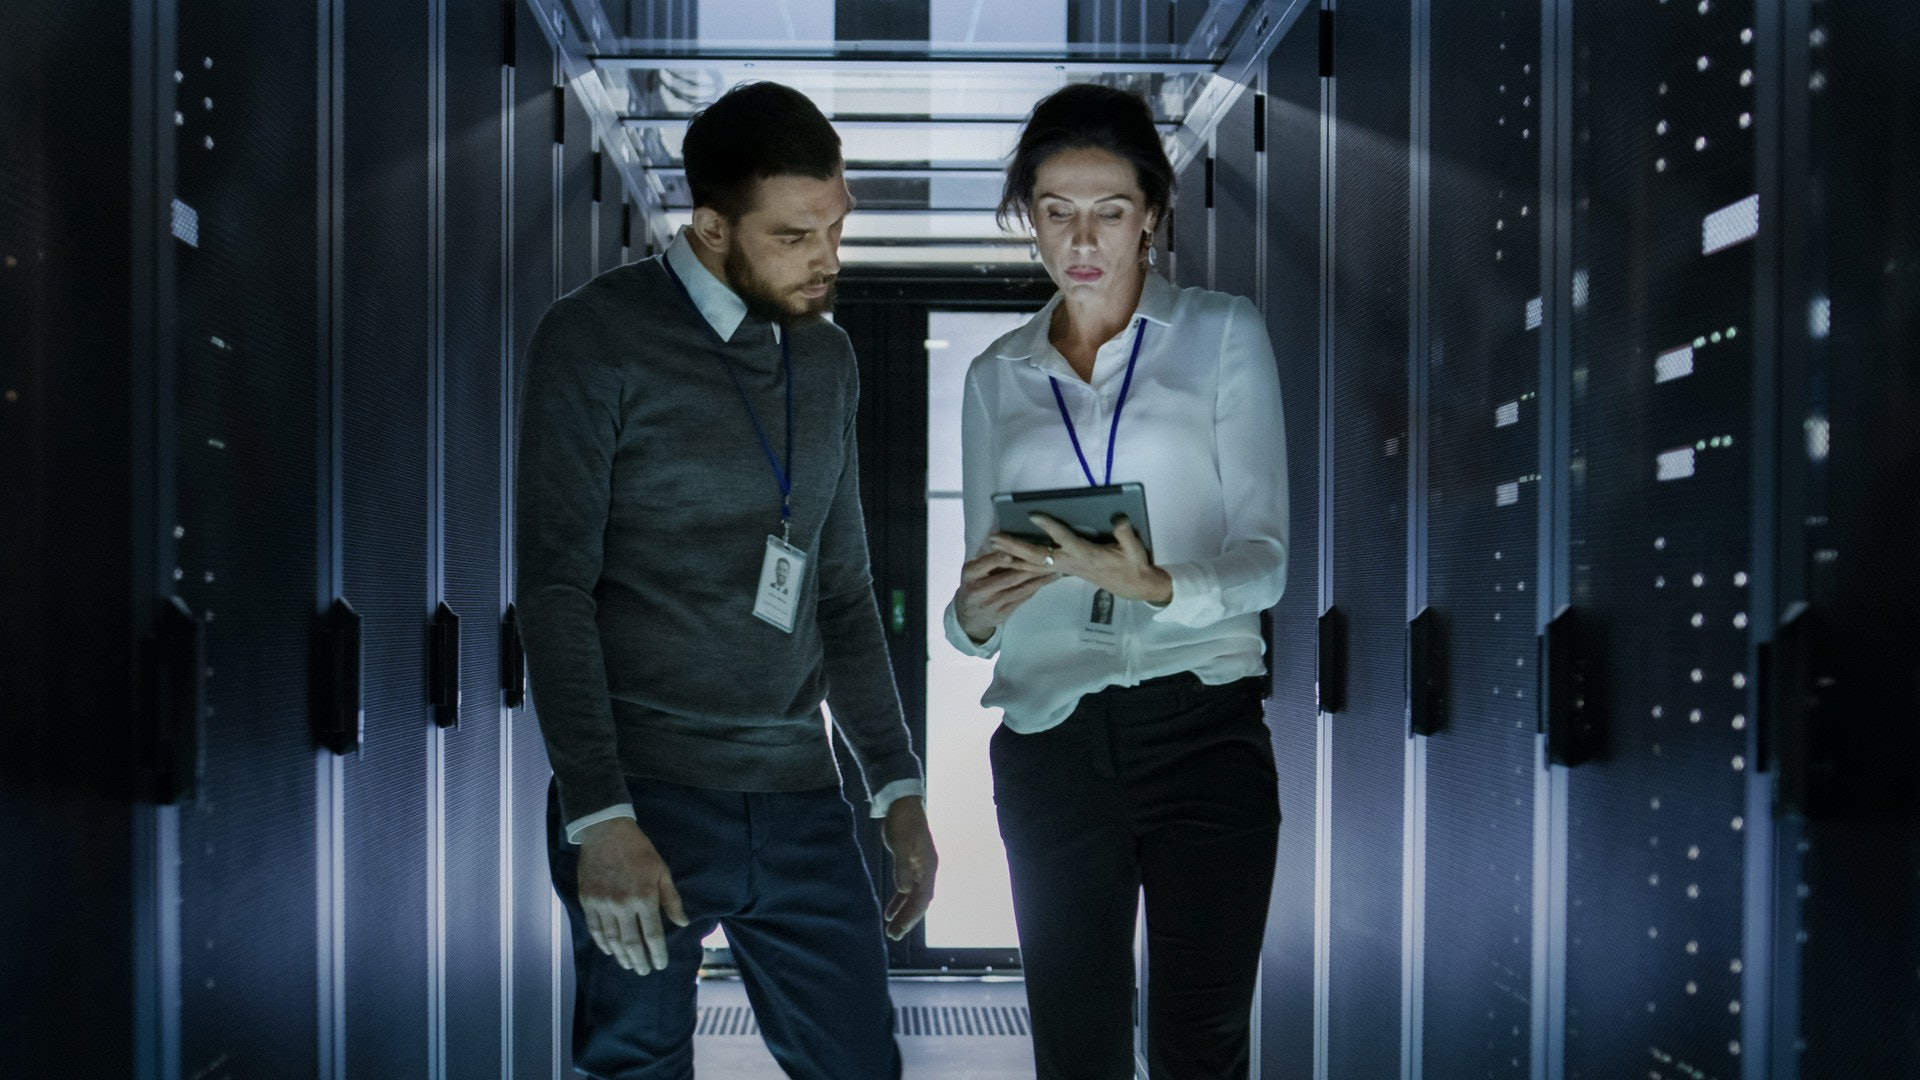 two technology workers walking through computer server room looking at an ipad